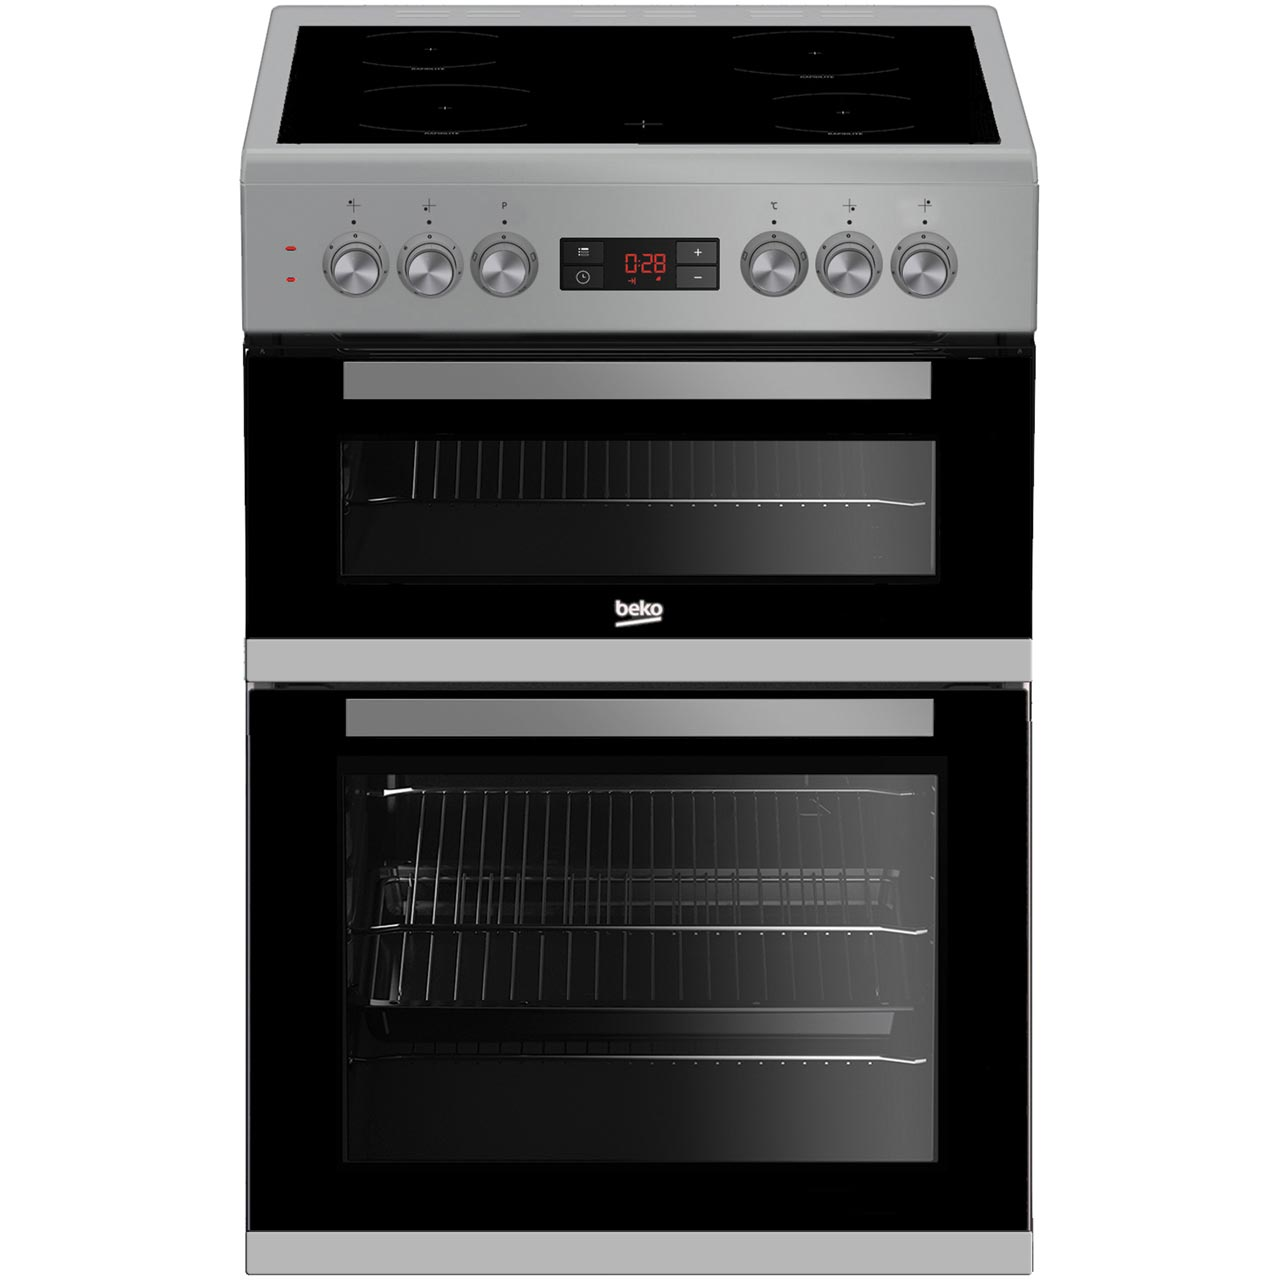 Beko KDC653S Free Standing Cooker in Silver